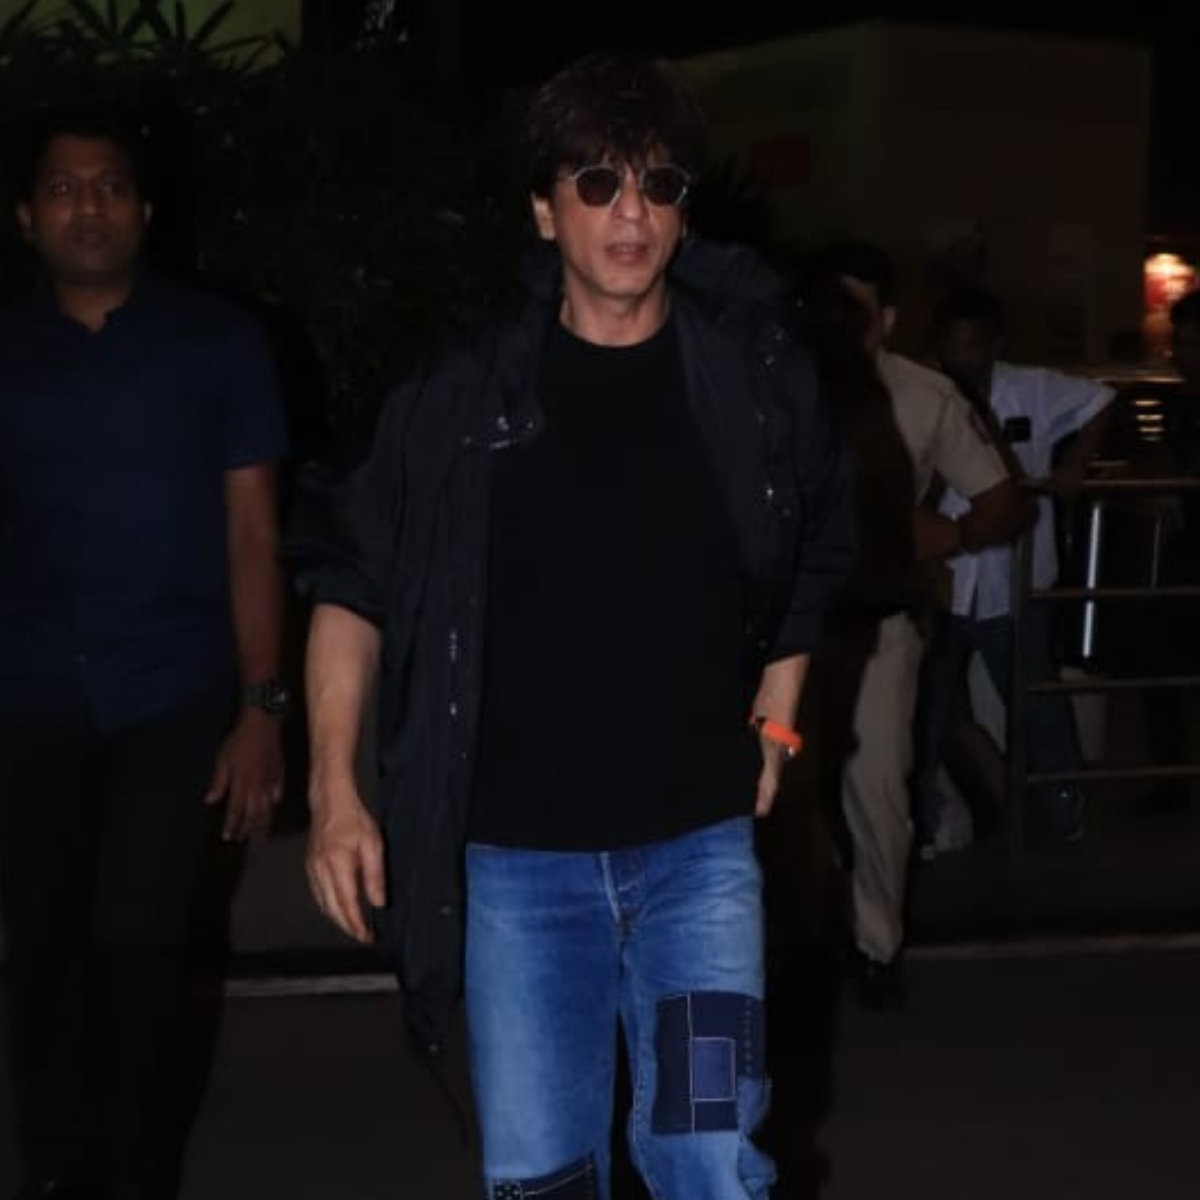 PHOTOS: Shah Rukh Khan looks suave in his casual outfit when snapped in the city